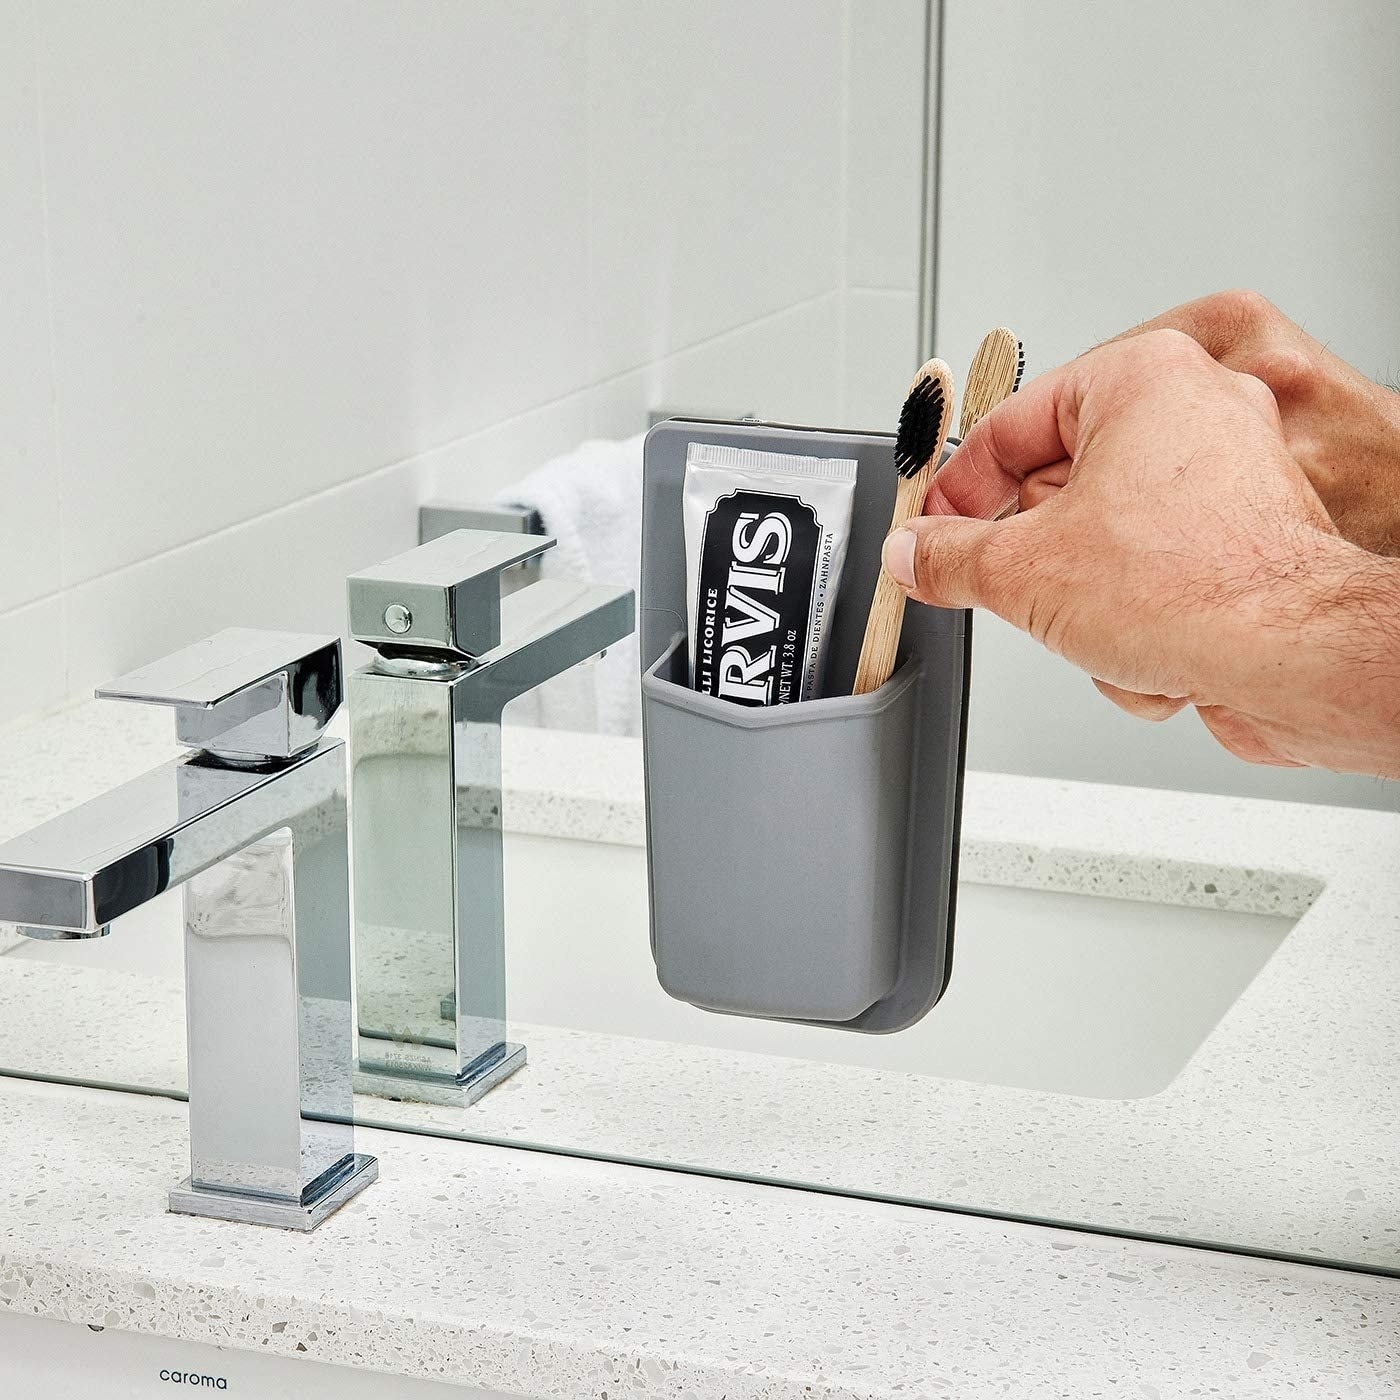 gray silicone toothbrush holder stuck on bathroom mirror